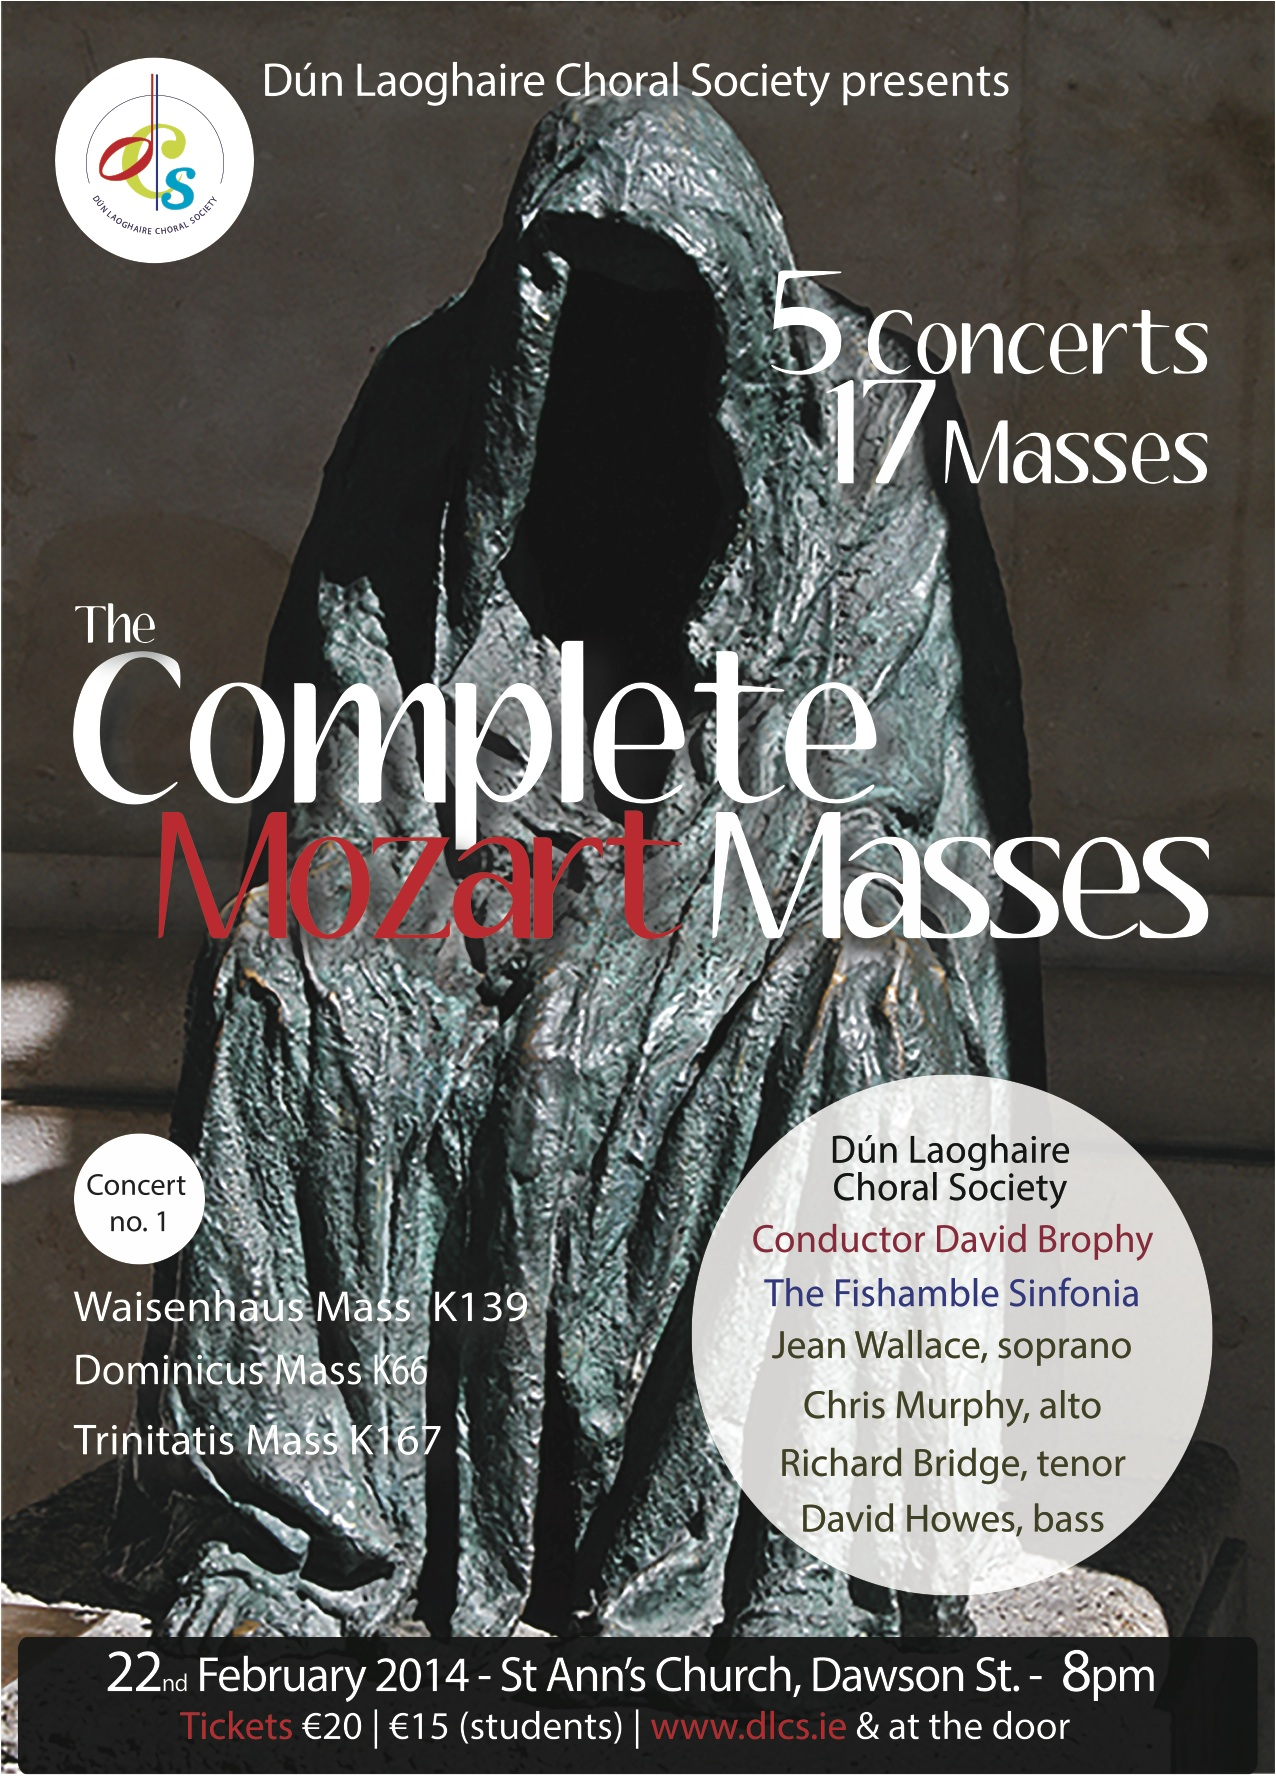 Complete Mozart Masses Concert 1, 22nd February 2014